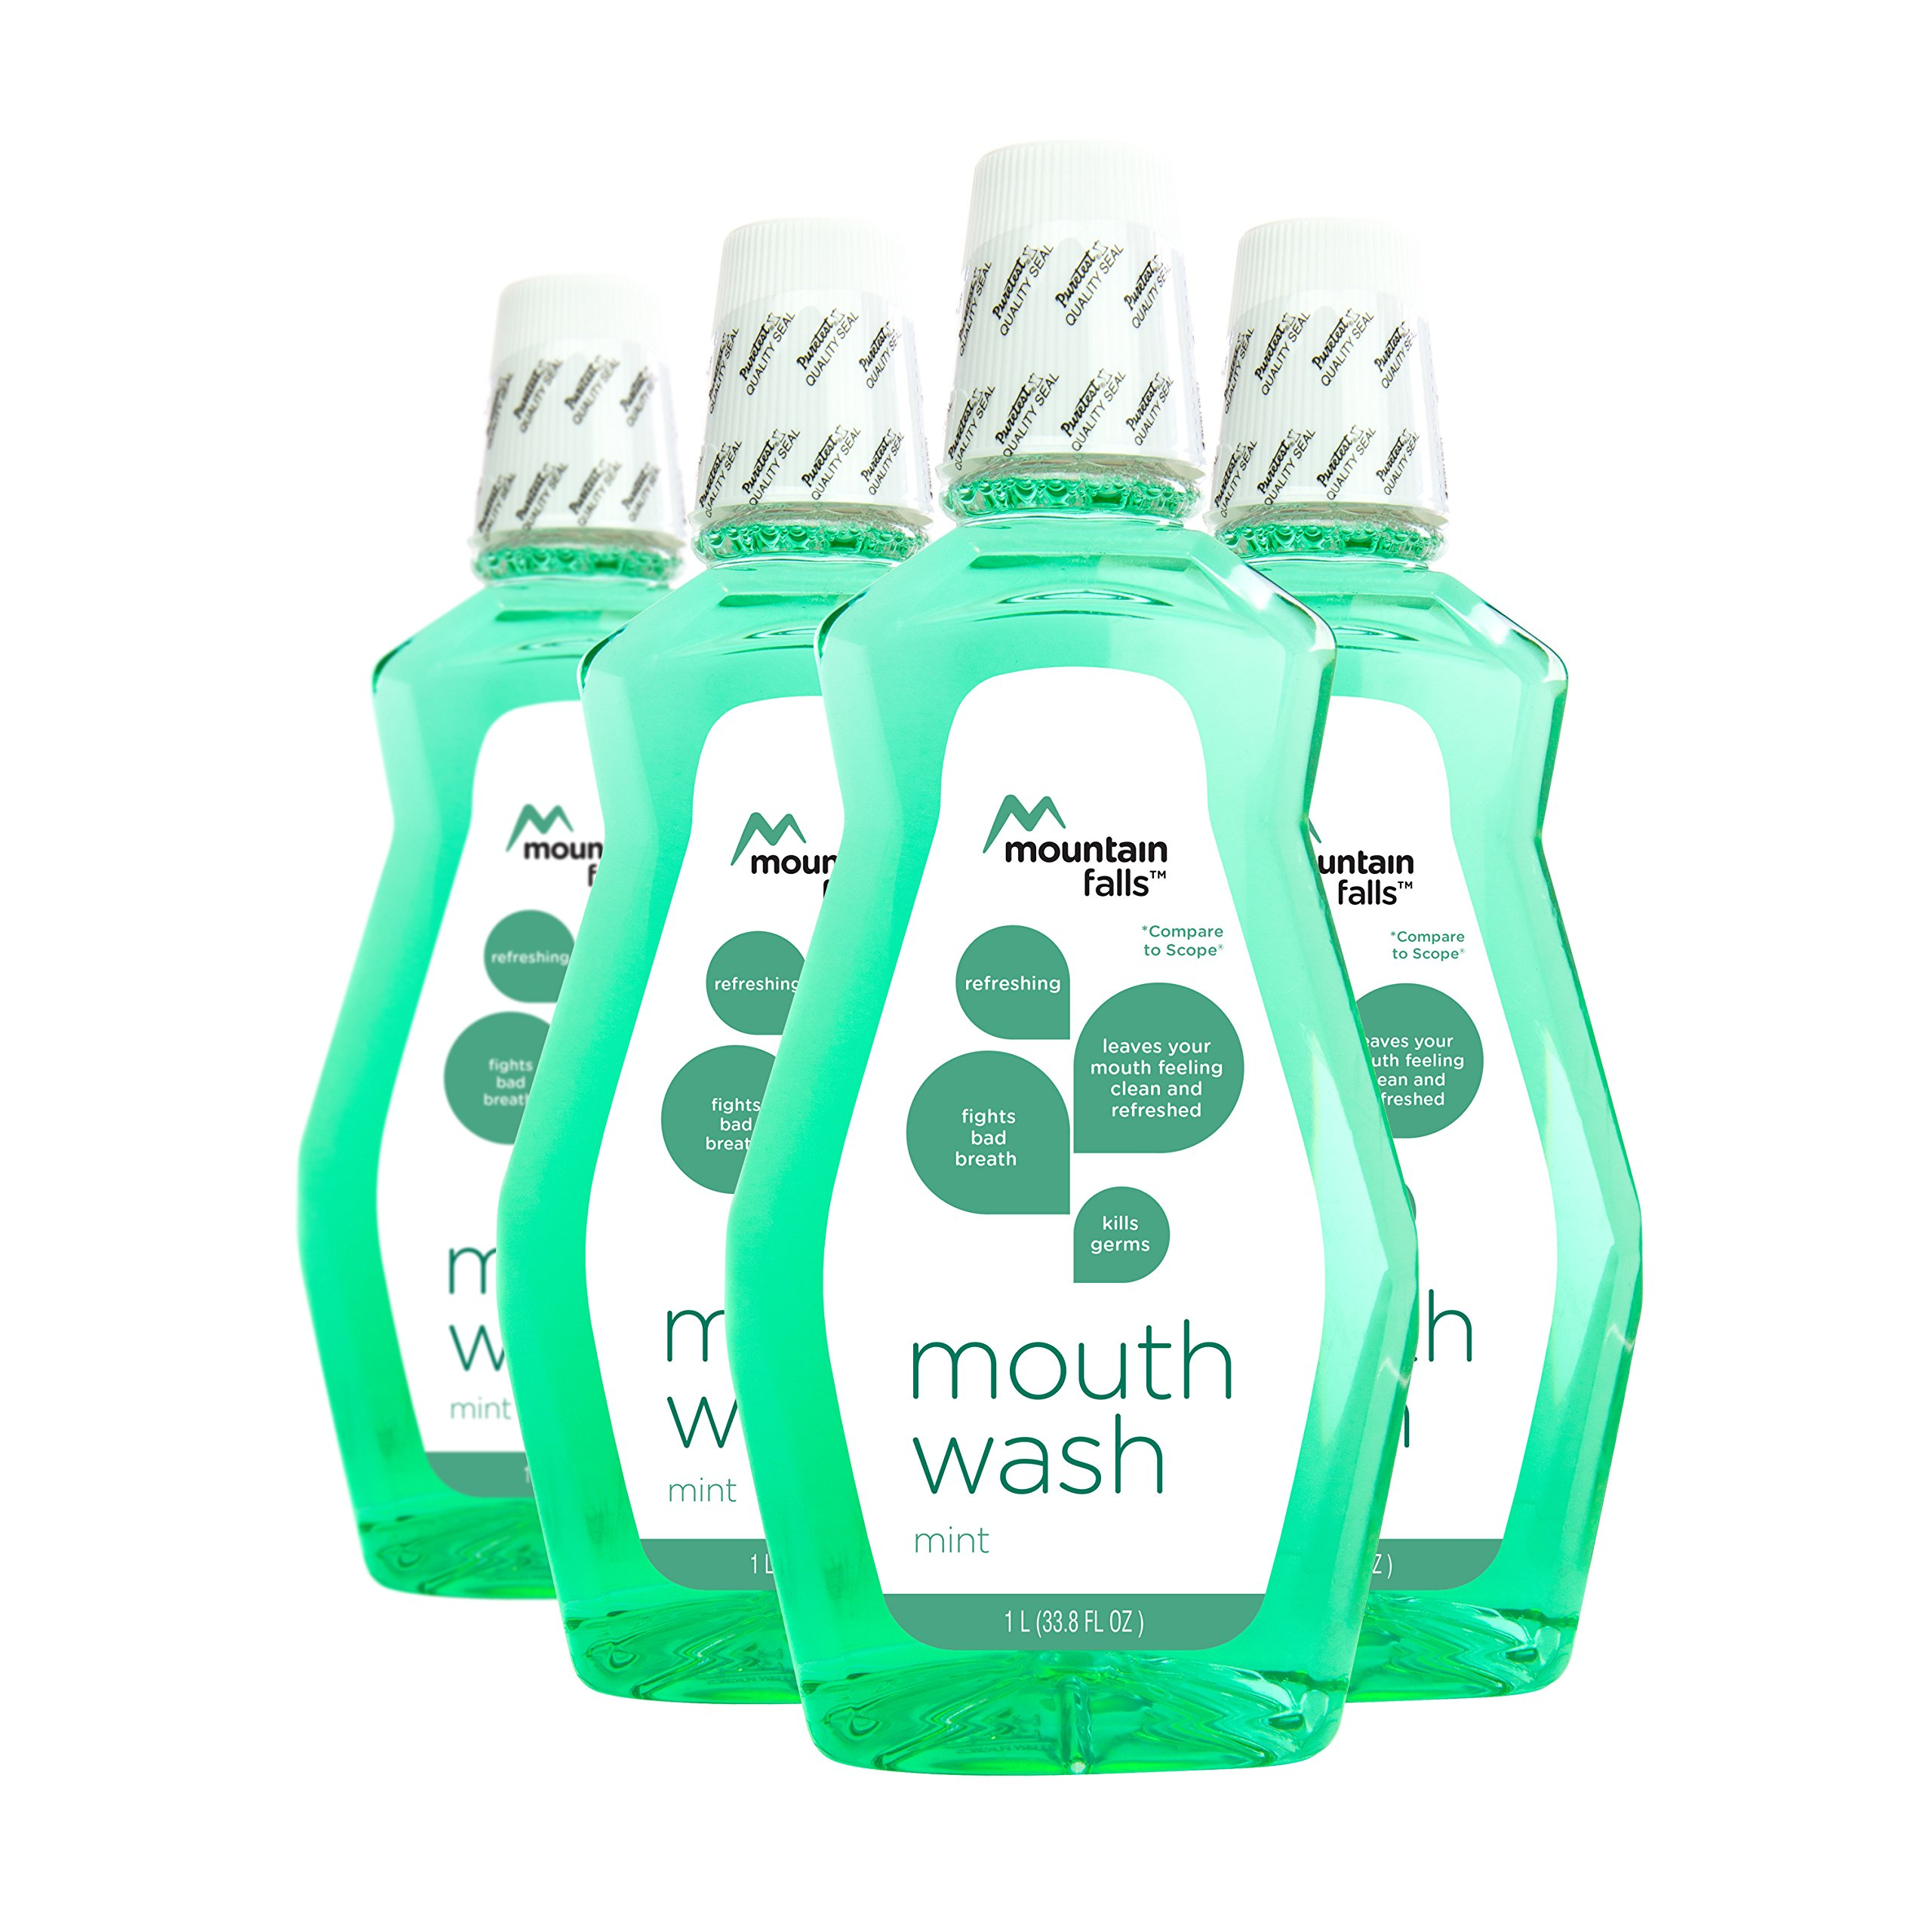 Mountain Falls Mouthwash, Mint, Compare to Scope, 33.79 Fluid Ounce (Pack of 4)